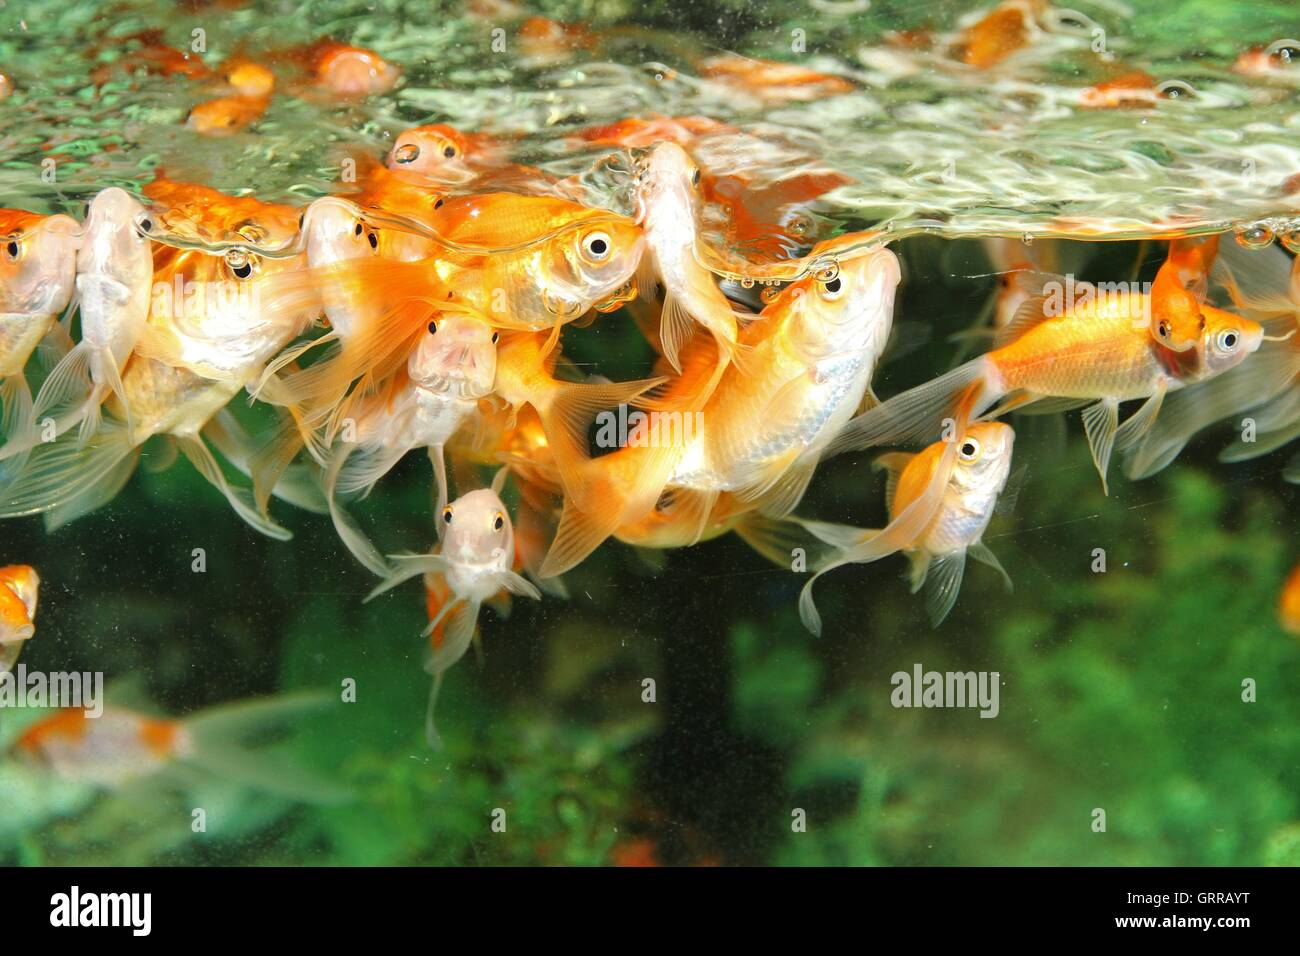 Gold fishes in a fish tank waiting for food. - Stock Image